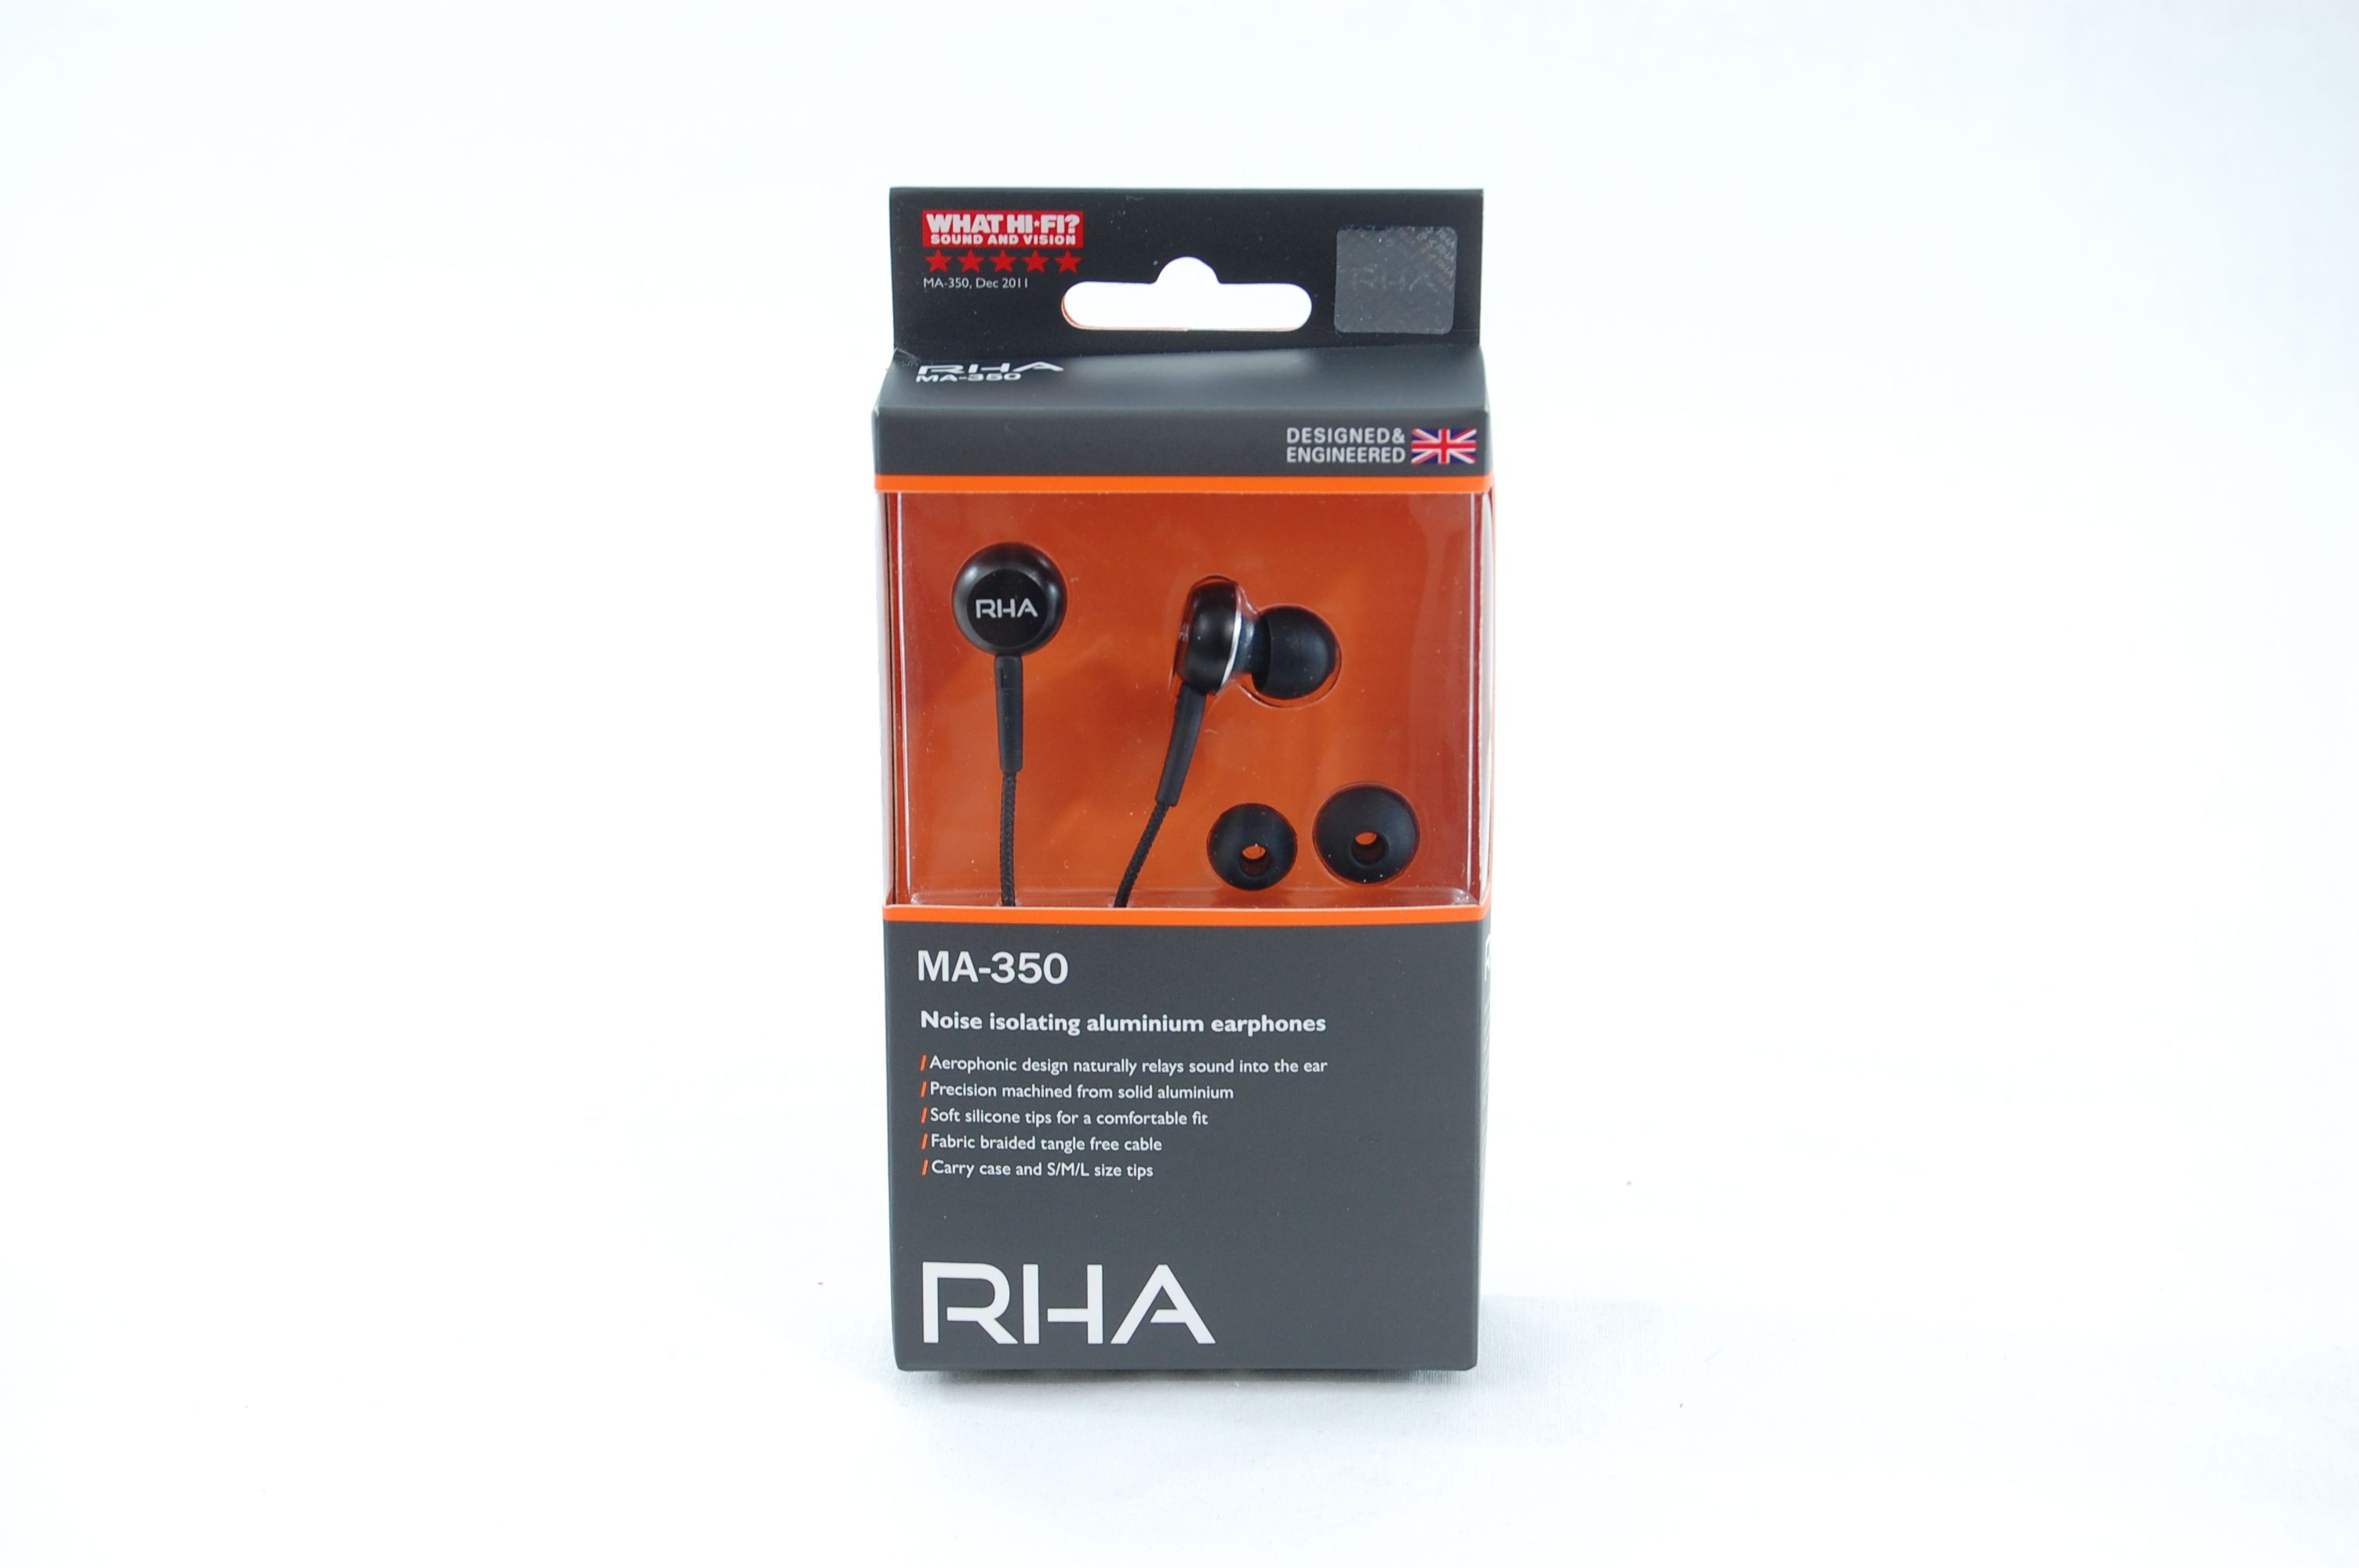 RHA MA 350 Noise Isolating Aluminum Earphones Review - Package 1